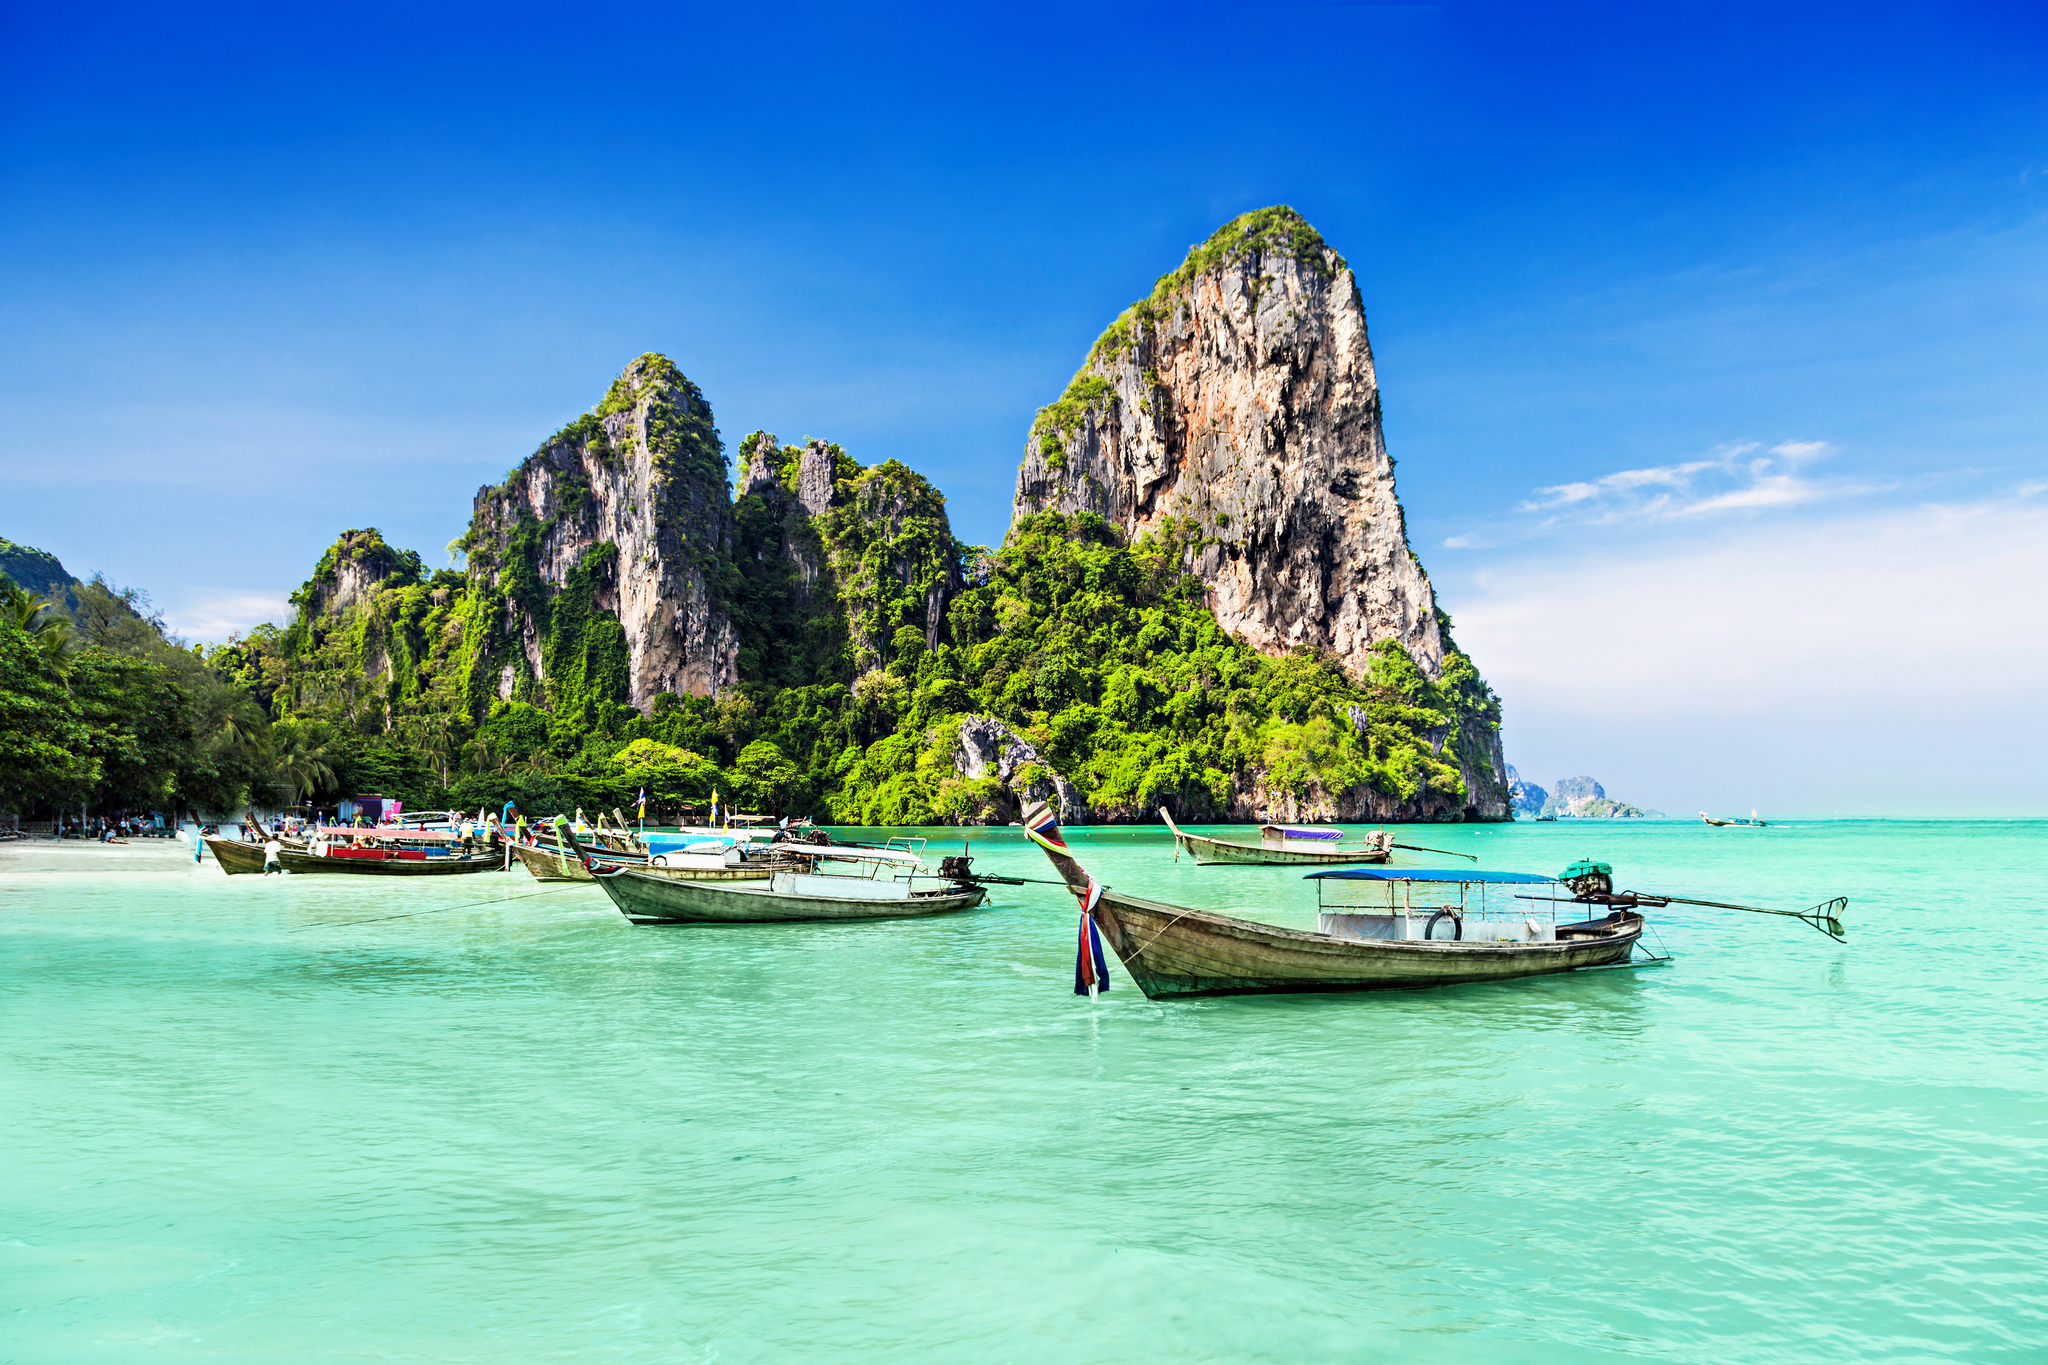 Transparent Blue Waters in Thailand 955.41 Kb